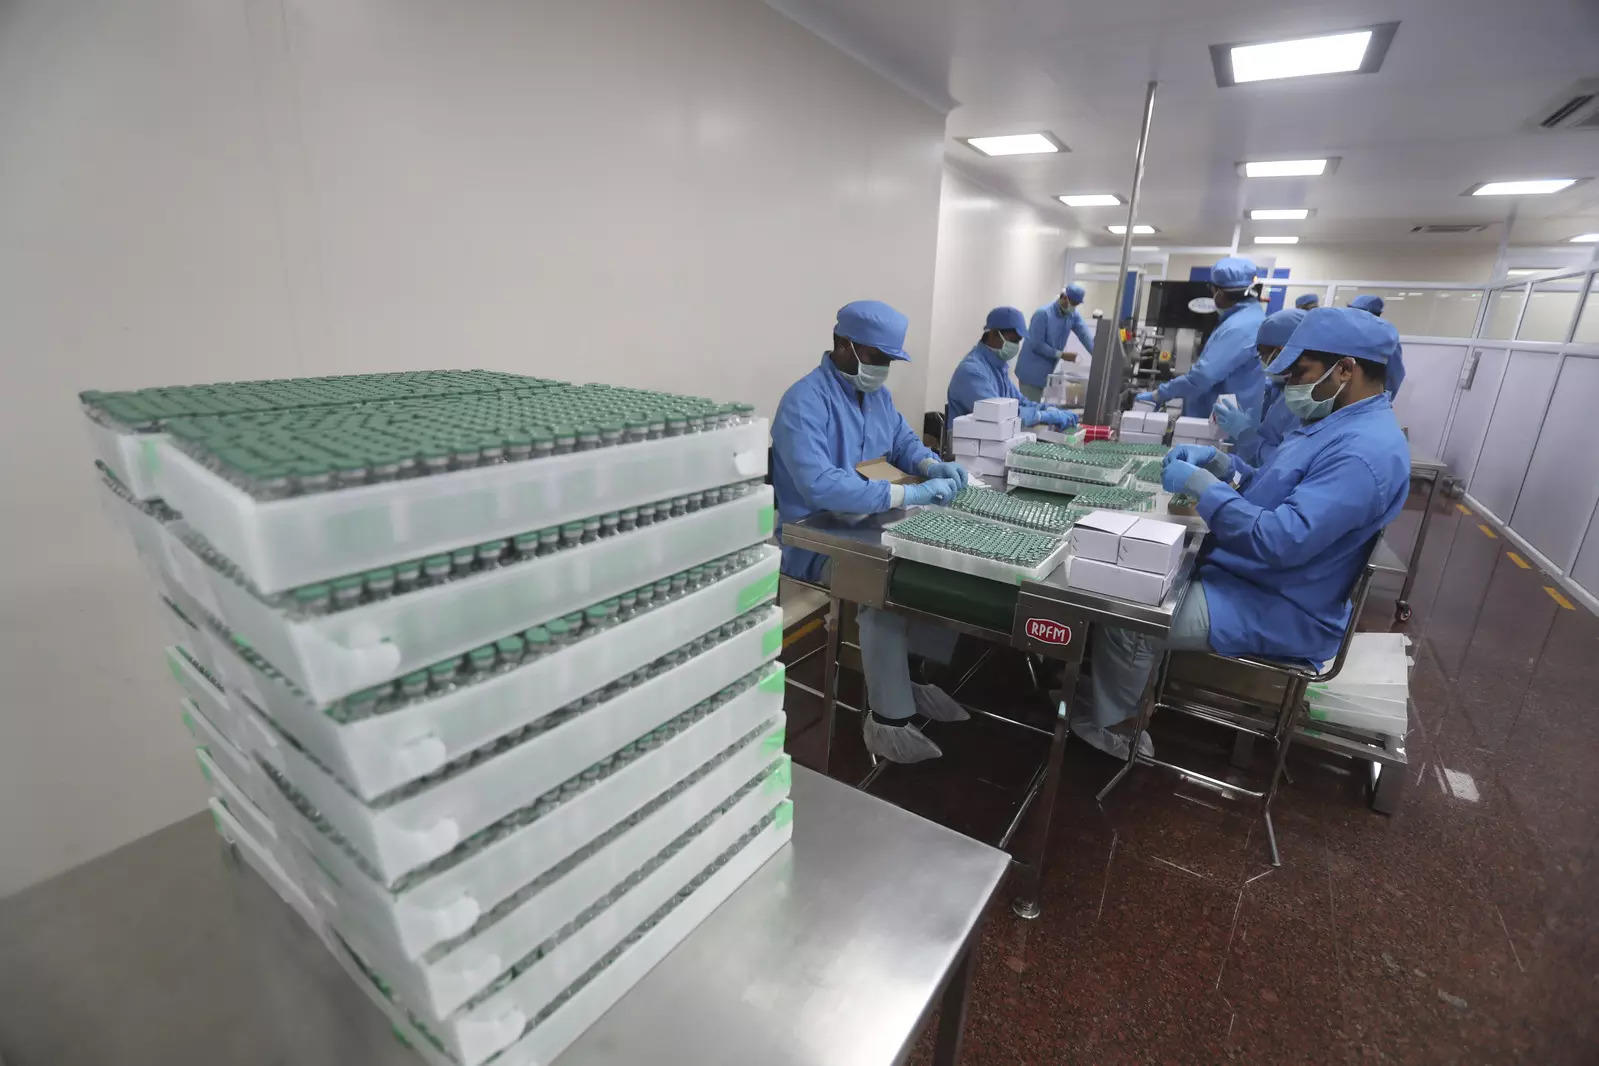 Gujarat govt in talks with Bharat Biotech to ramp up production of Covaxin: DBT